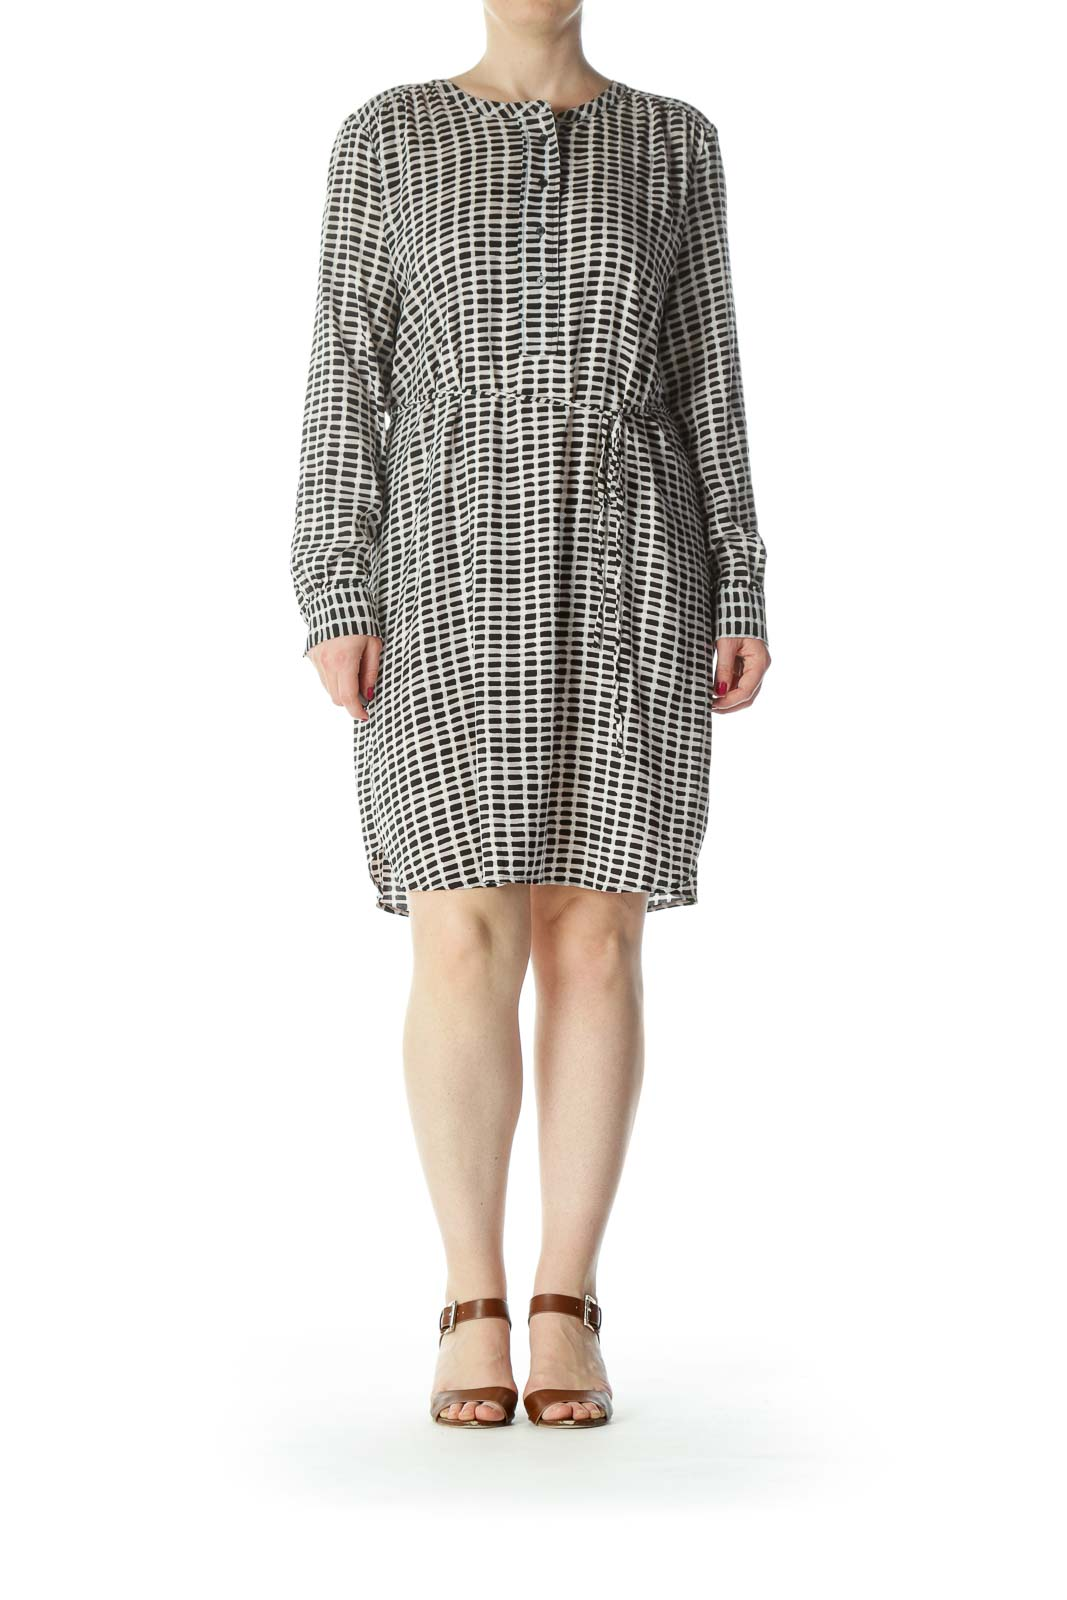 Black/Beige/White Printed Long-Sleeve Belted Dress